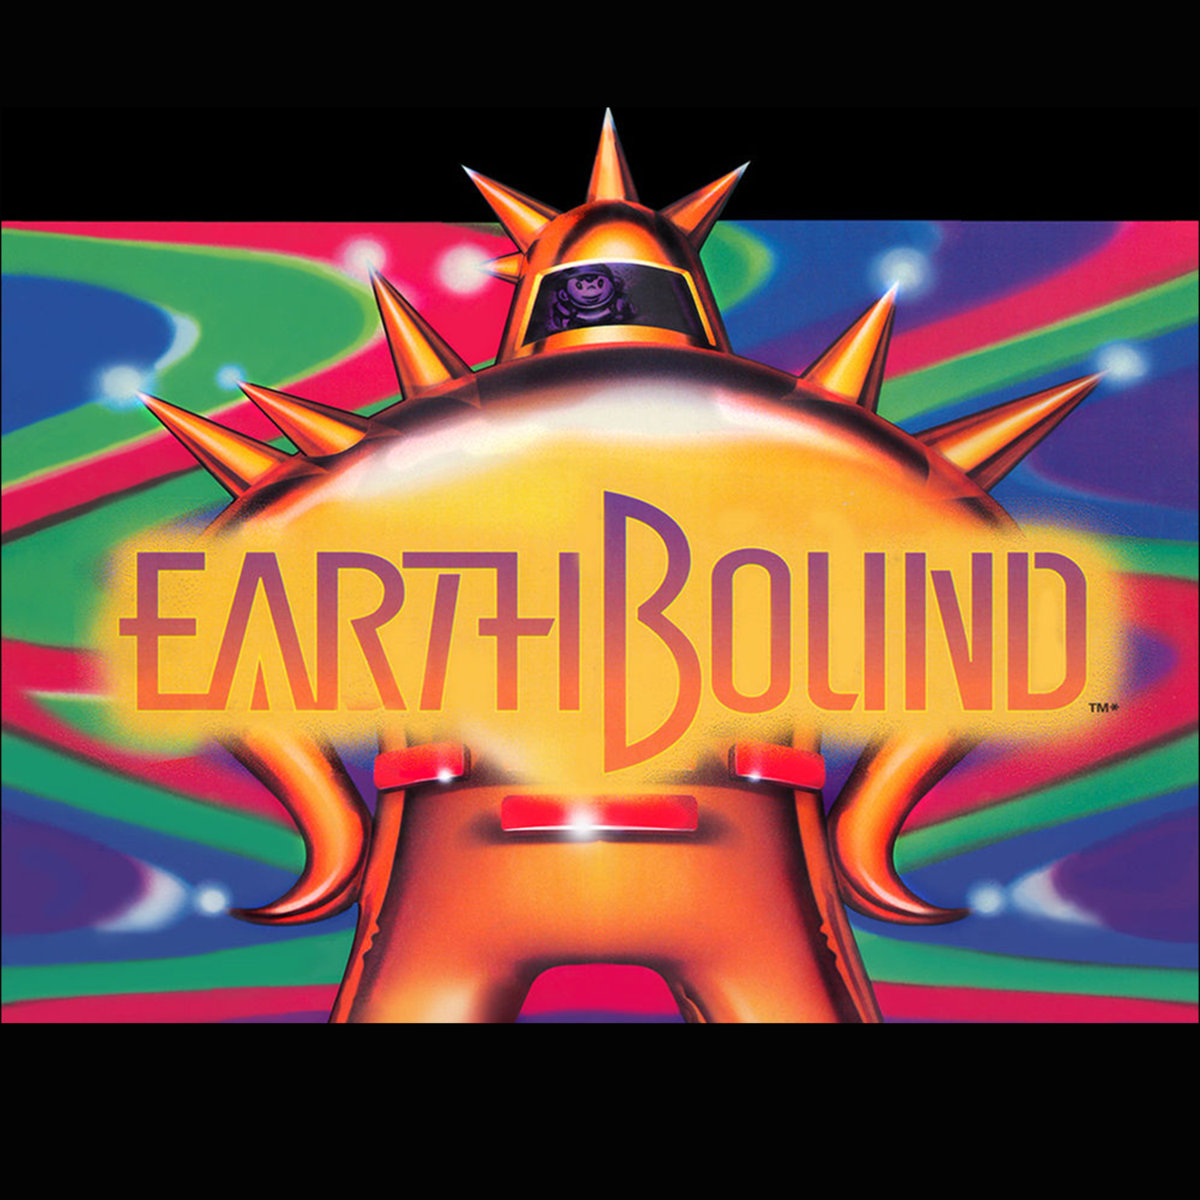 EarthBound (video game, JRPG, turn-based RPG, science fiction, low